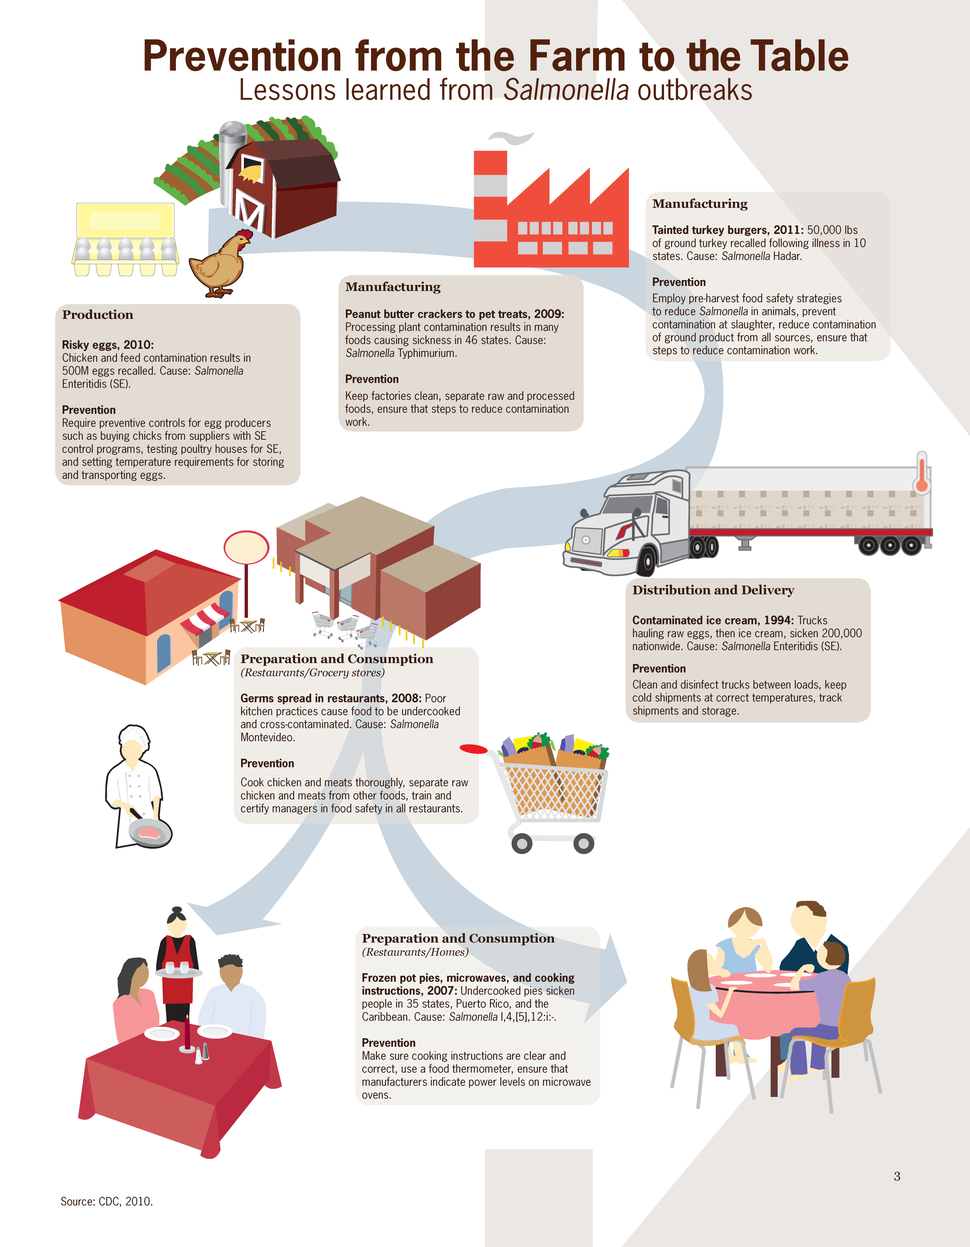 Prevention of Salmonella from the farm to table infographic